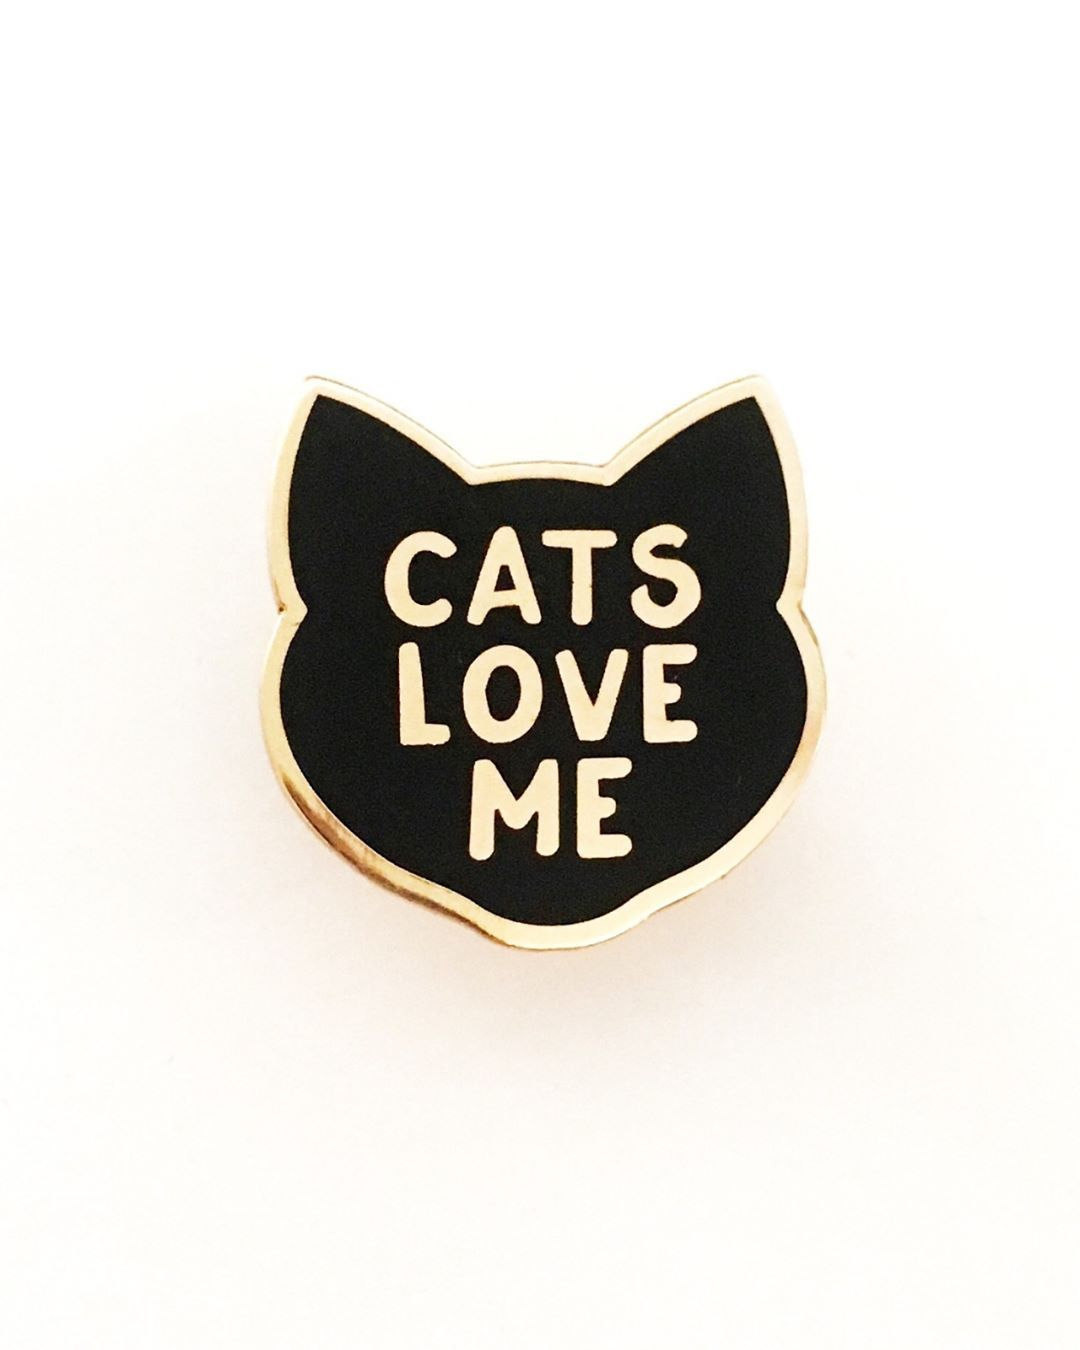 """386 Likes, 9 Comments - Pin Lord (@pinlord) on Instagram: """"Cats Love Me pin from @claireyloucreations ❤ They do! Buy it through their link in bio!"""""""